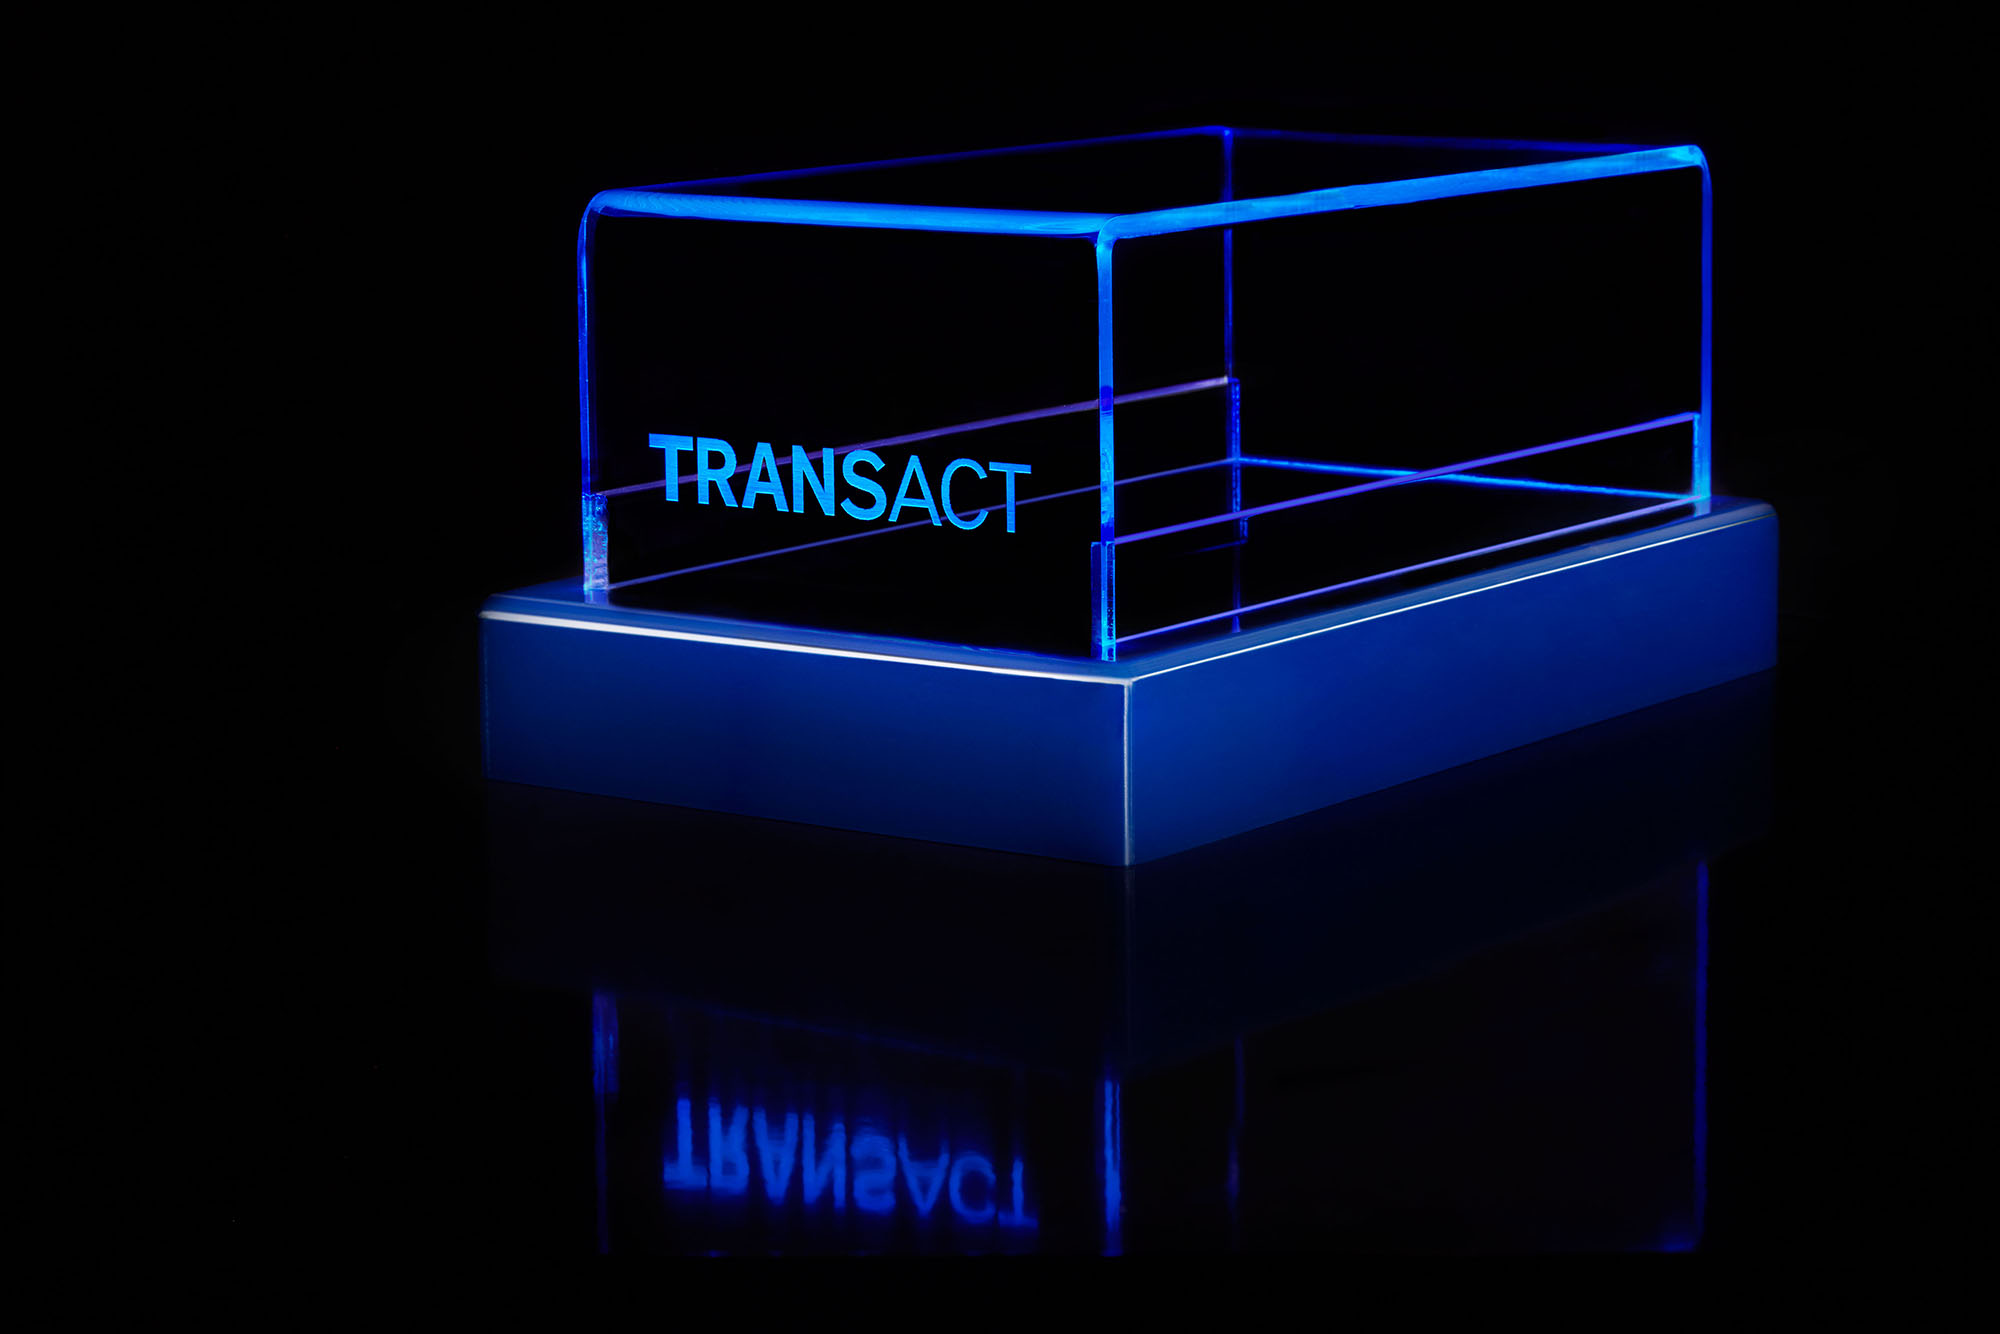 Transact LED Plastic Box